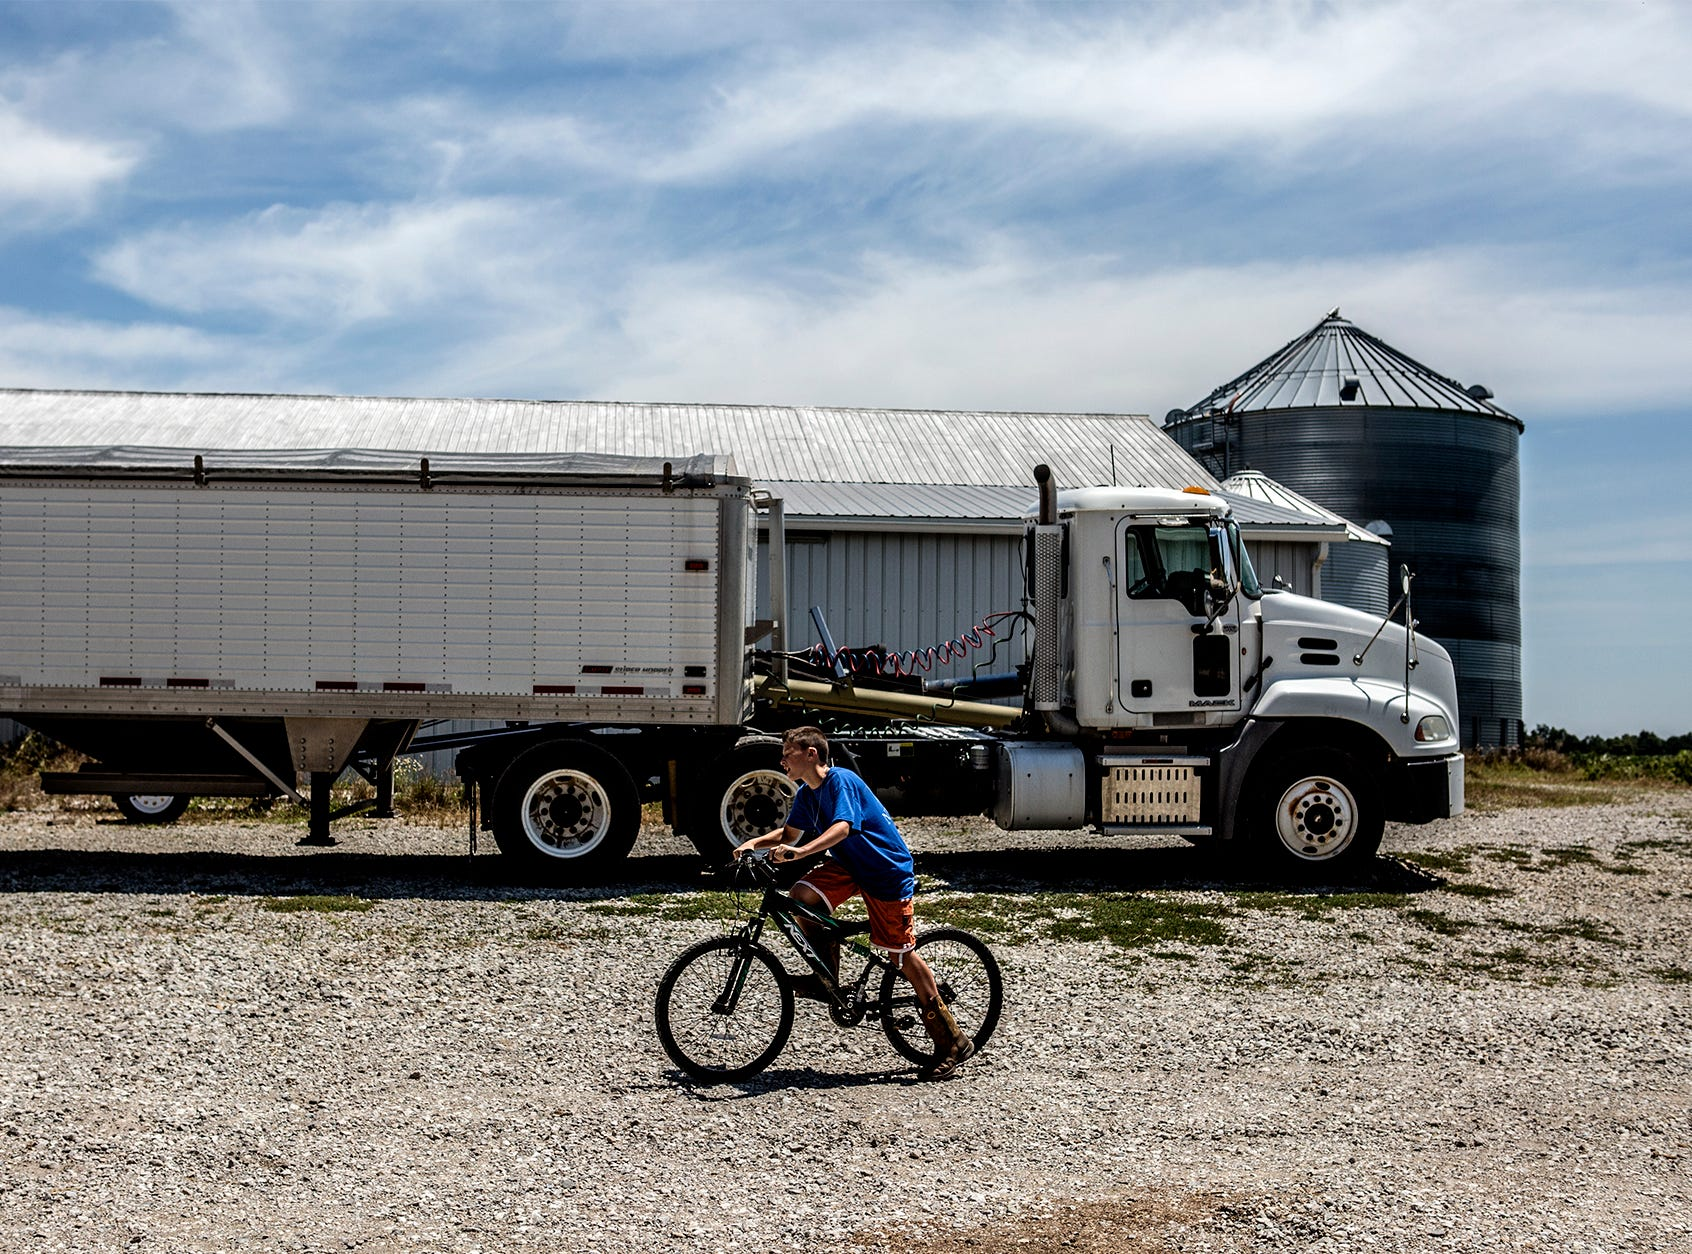 Arthur rides often rides his bike around the family farm in Utica. His parents love the freedom their children can have on the farm, as well as the work ethic they learn while helping out with chores.